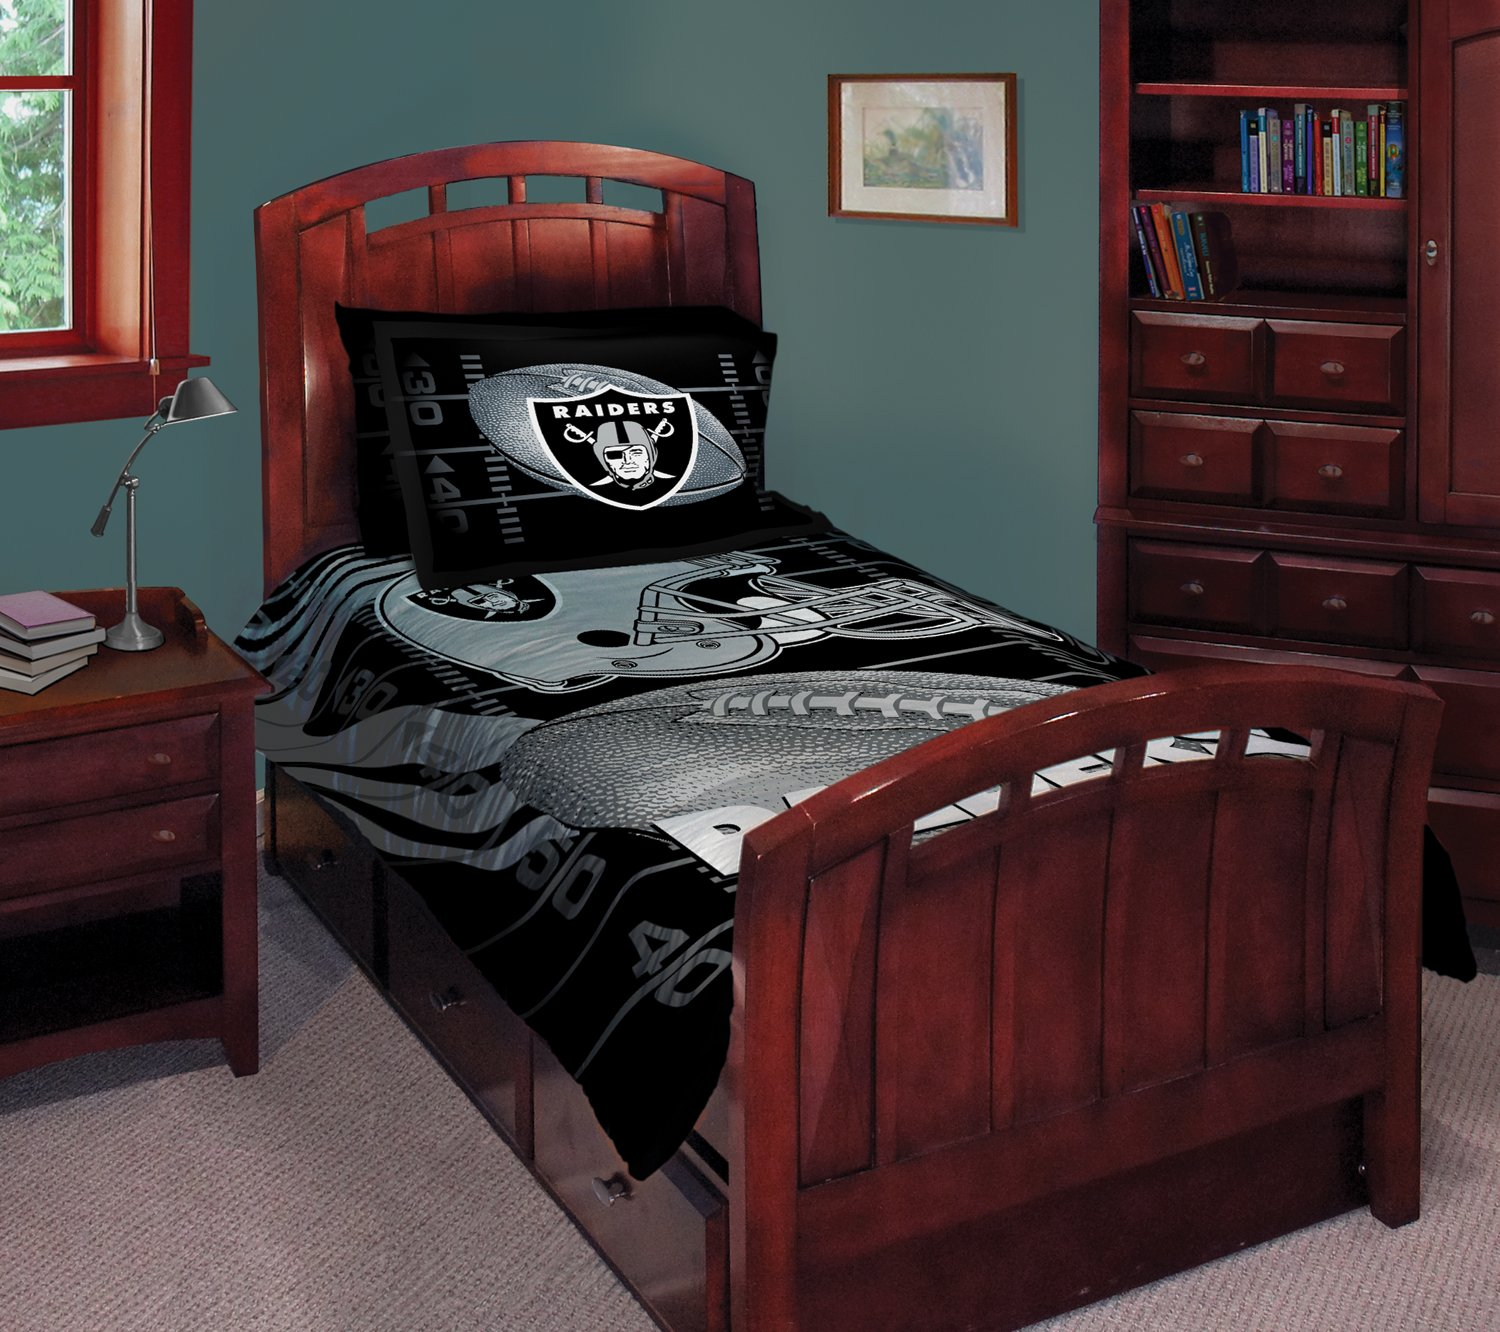 Nfl bedding for boys - Amazon Com Nfl Oakland Raiders Twin Full Comforter With Two Pillow Shams Sports Fan Bed Comforters Sports Outdoors